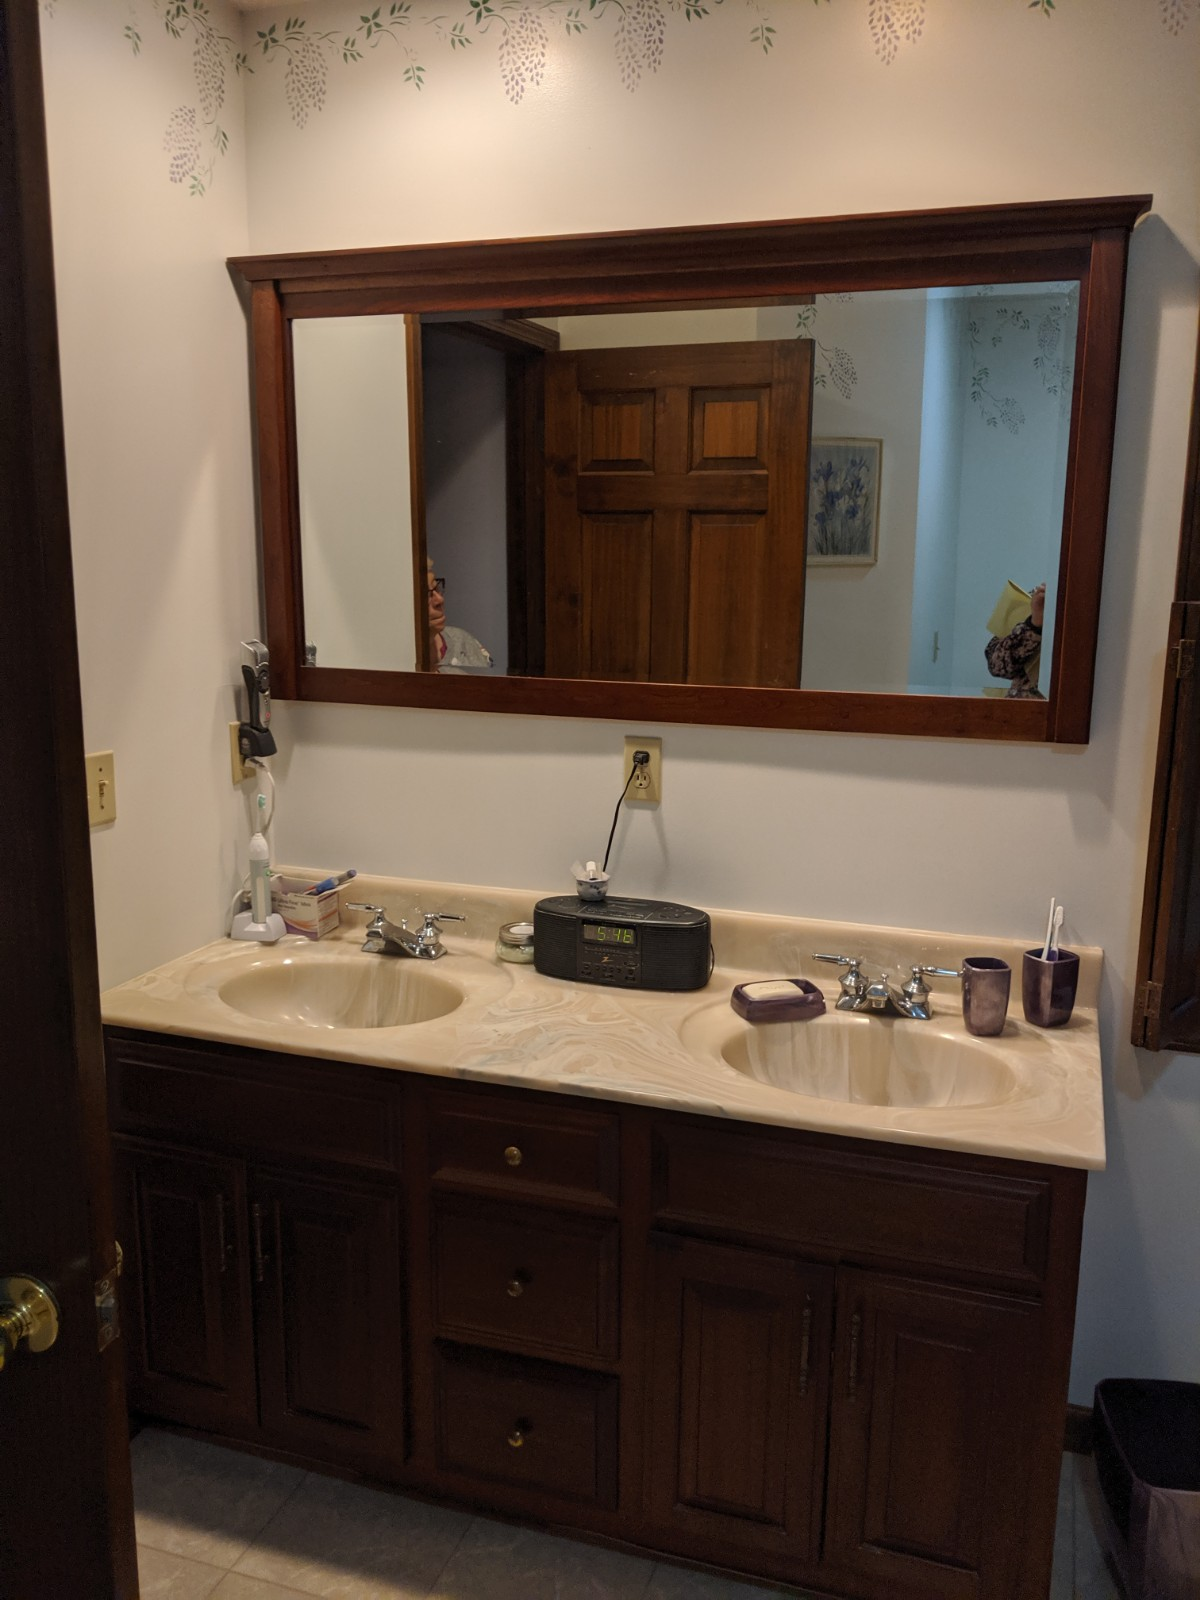 Outdated cultured marble double vanity top with outdated fixtures